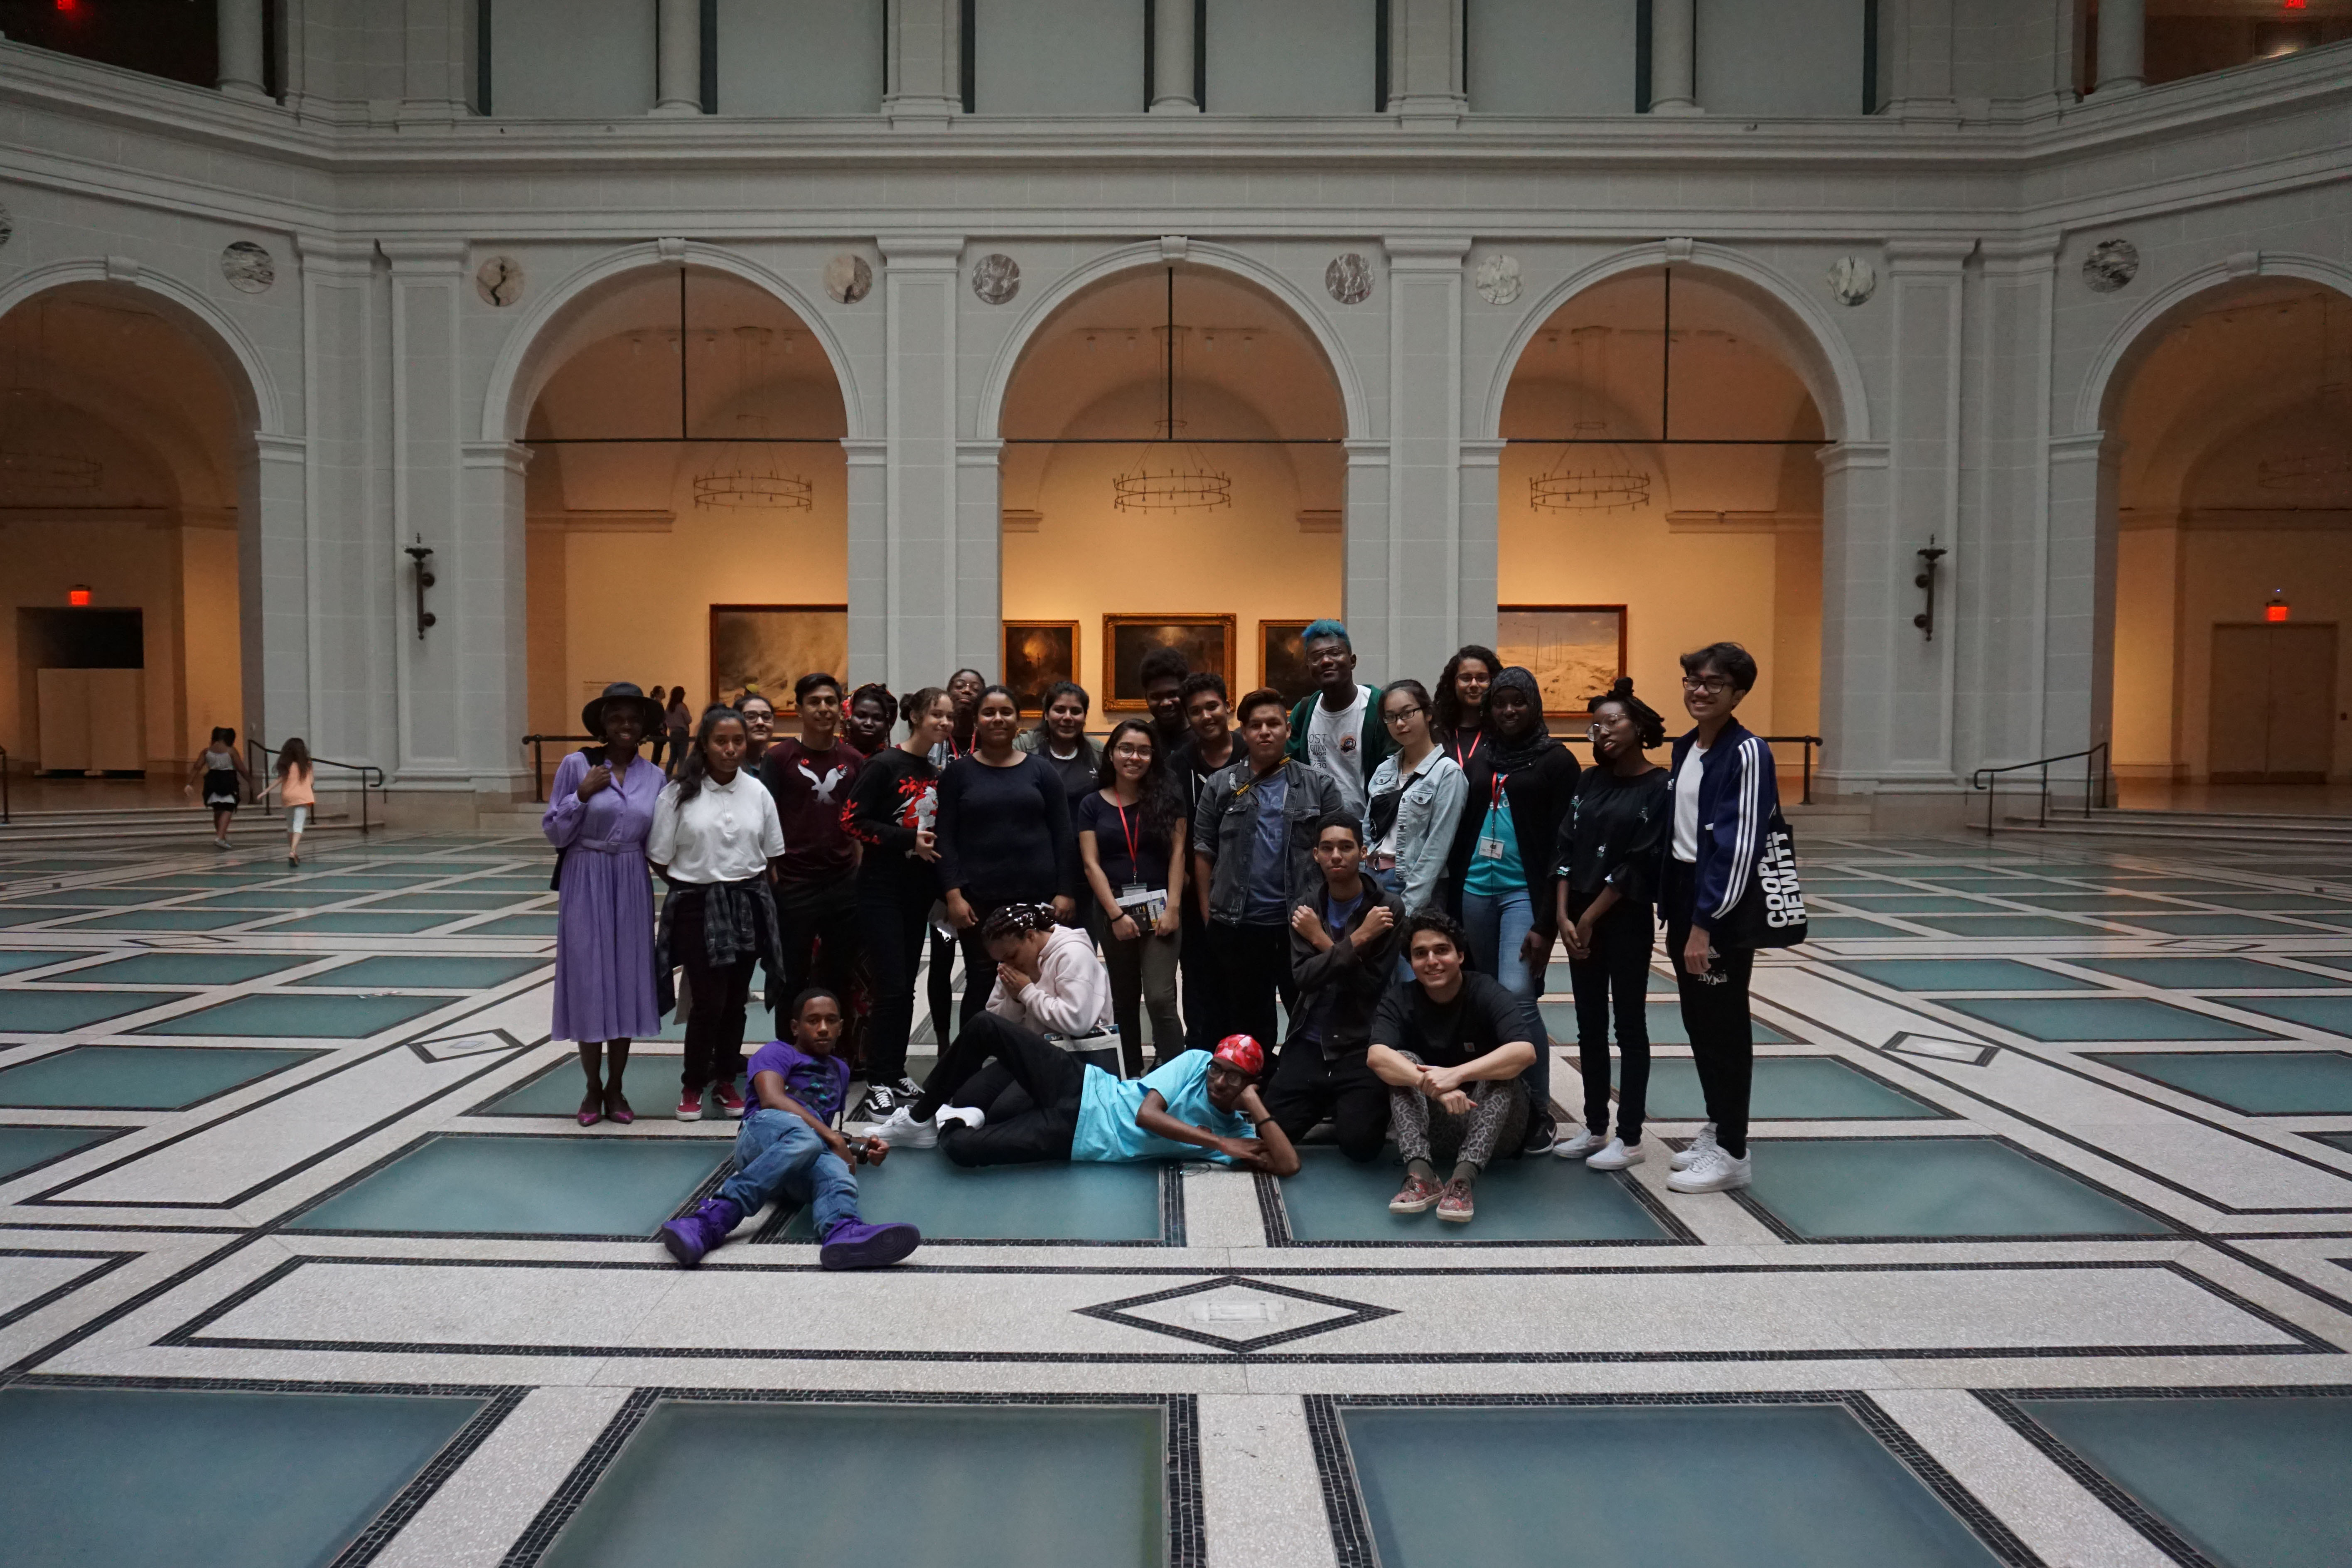 Group Photo: Soul of a Nation Exhibit at the Brooklyn Museum